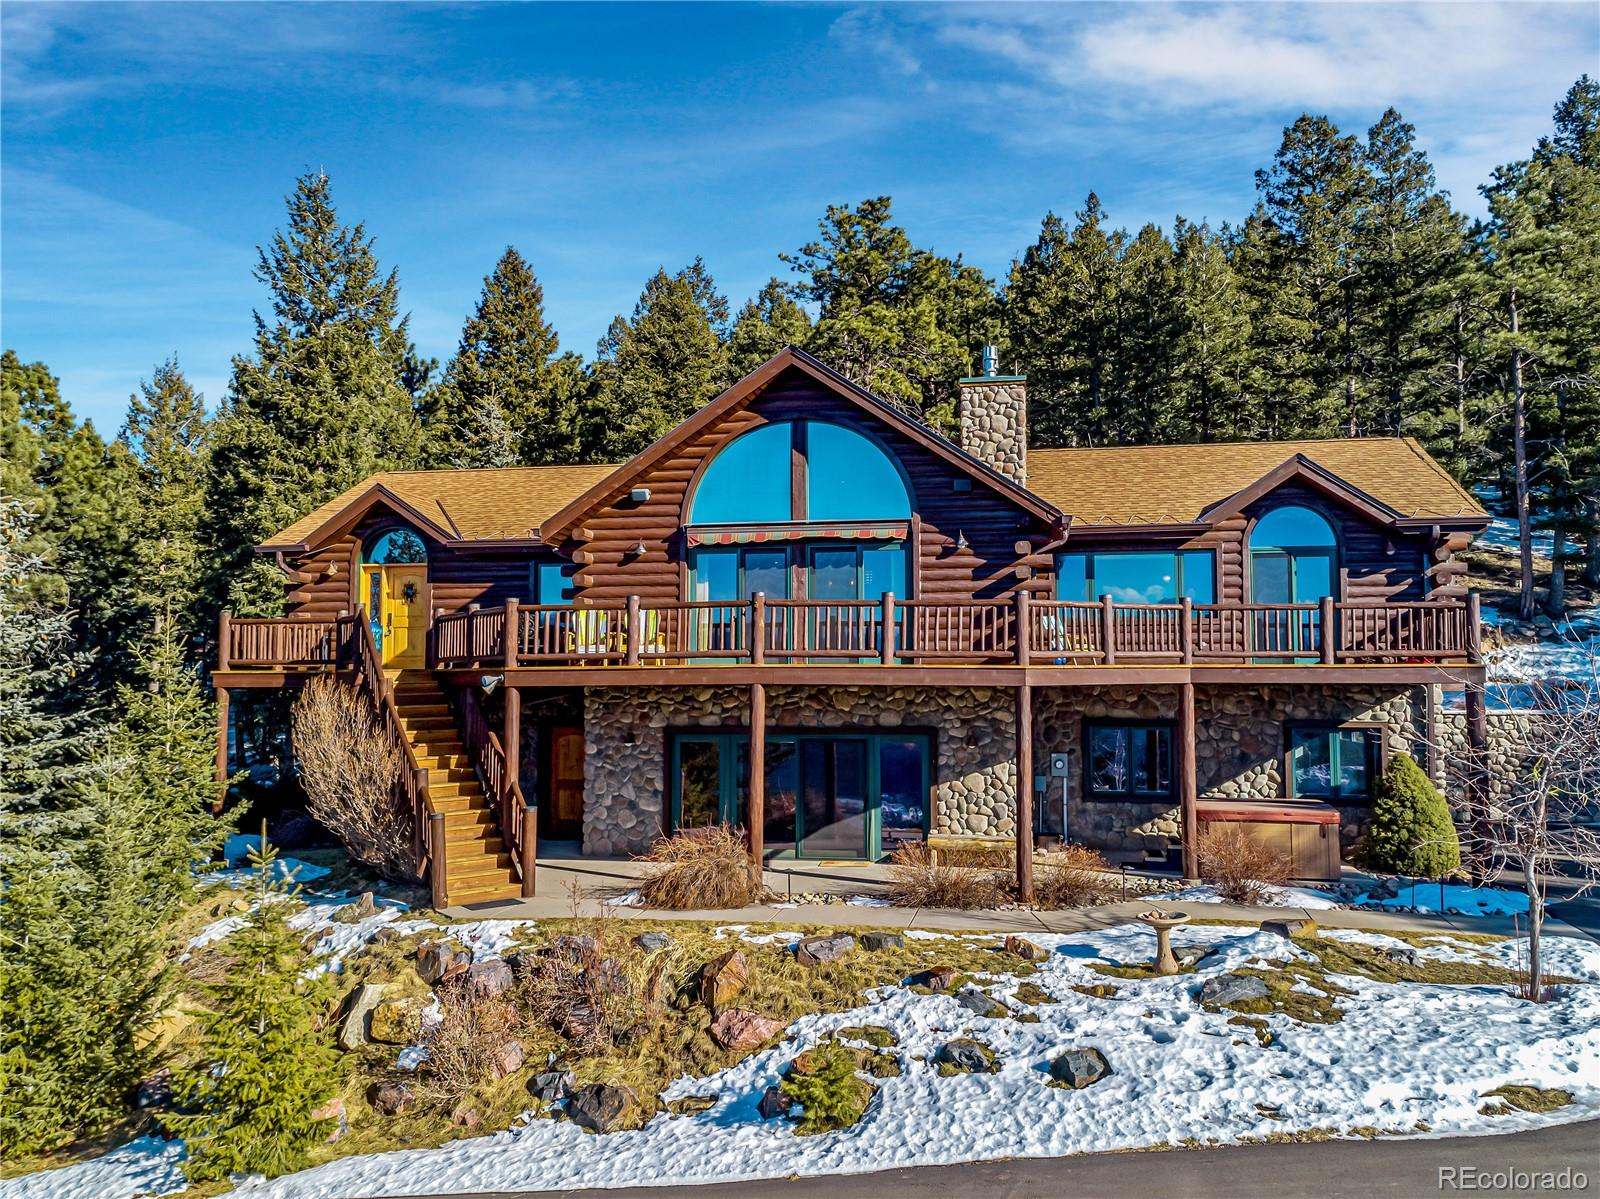 25952 Fern Gulch Road, Evergreen, CO 80439 - Evergreen, CO real estate listing